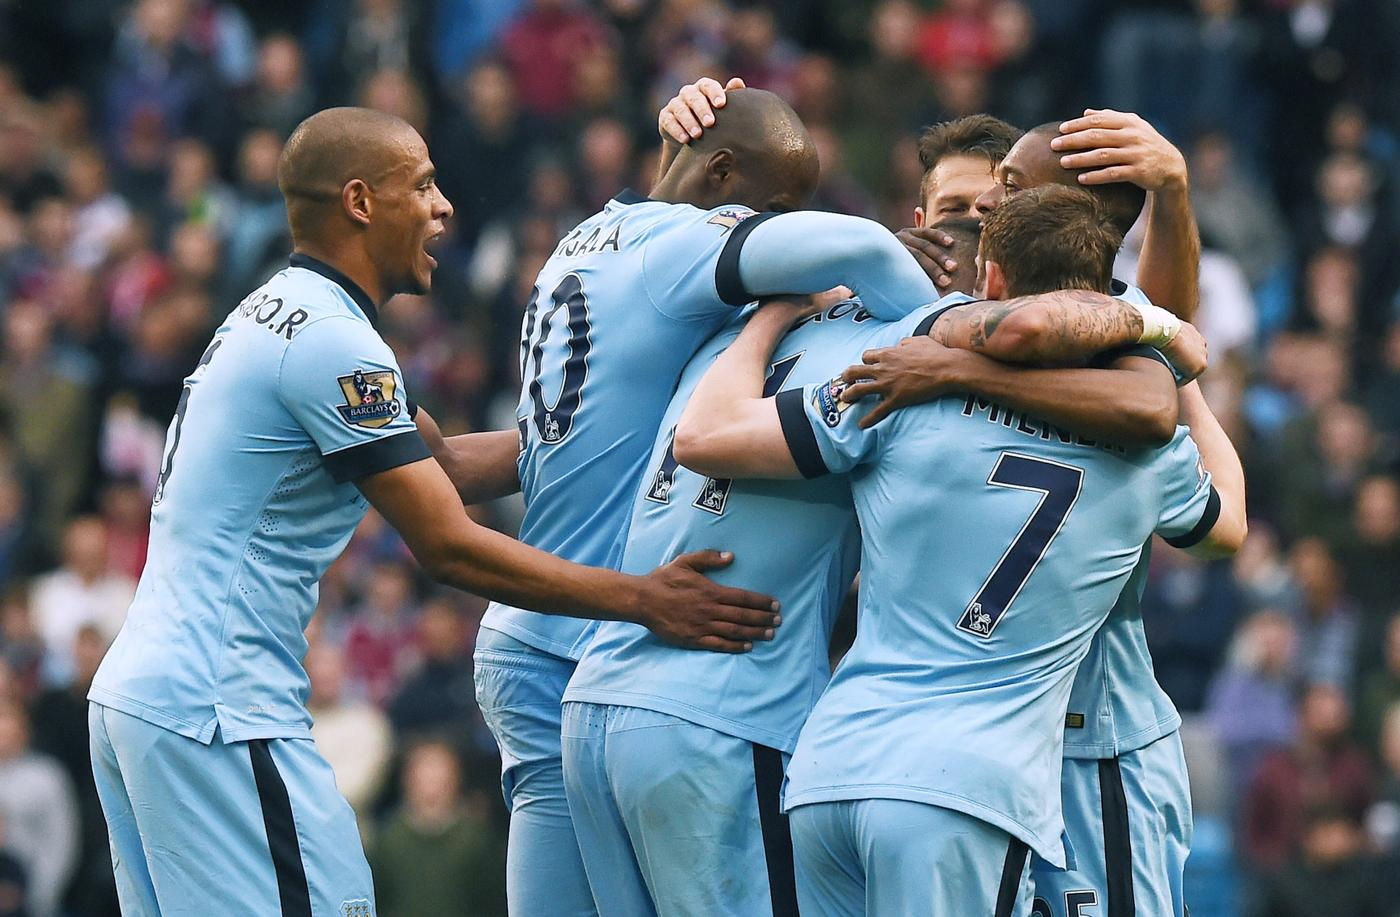 Five ways for Manchester City to regain the Premier League title